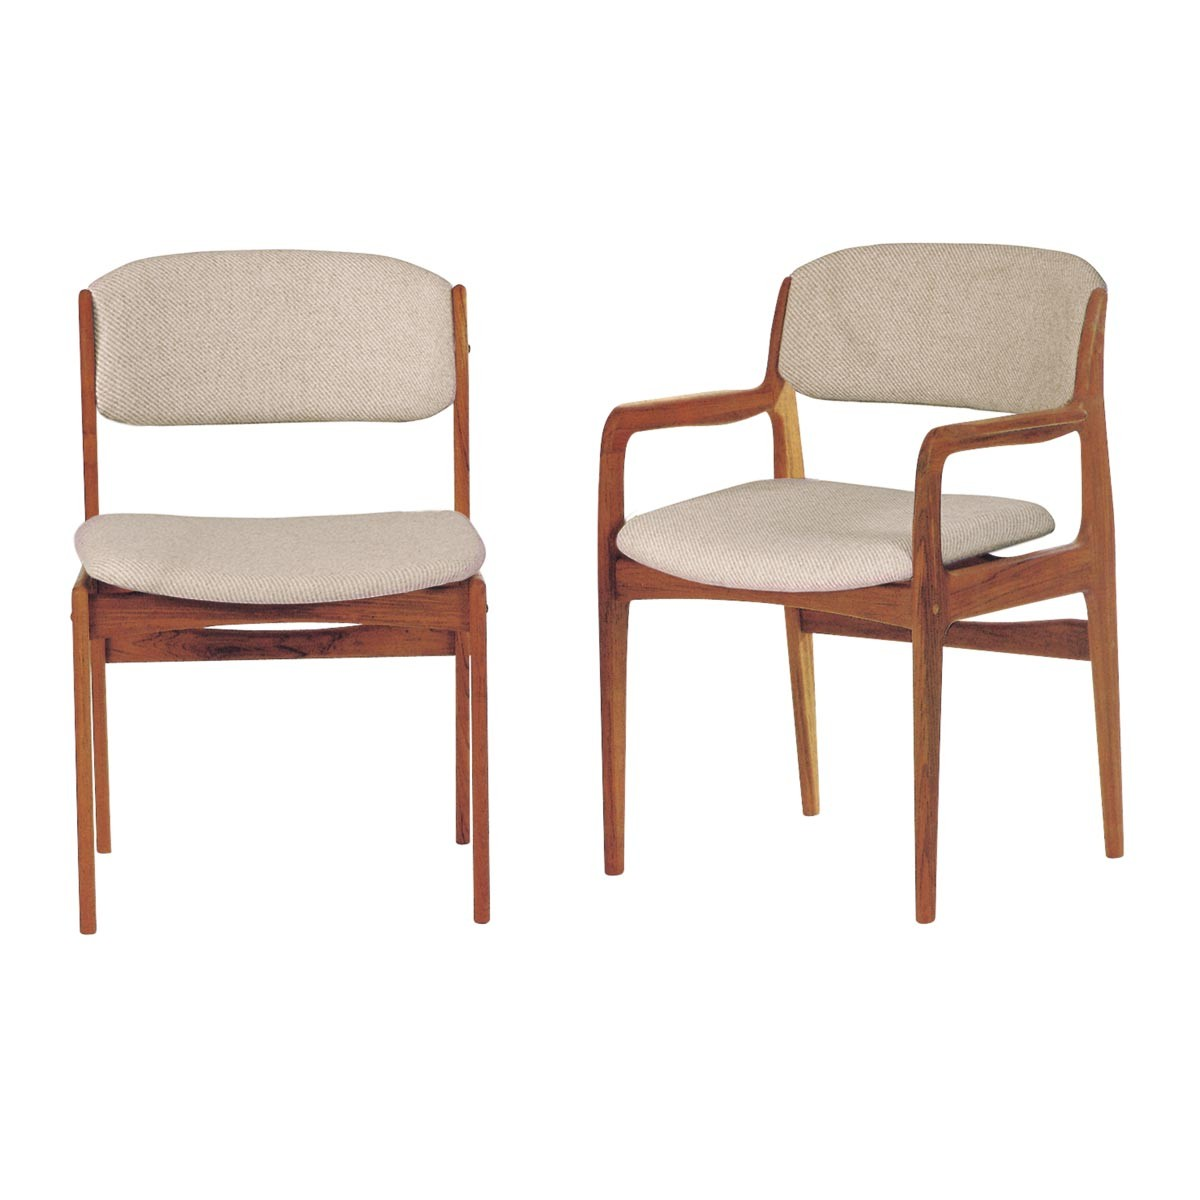 sun dining side chair bl 956 from 339 00 by sun cabinet danco modern